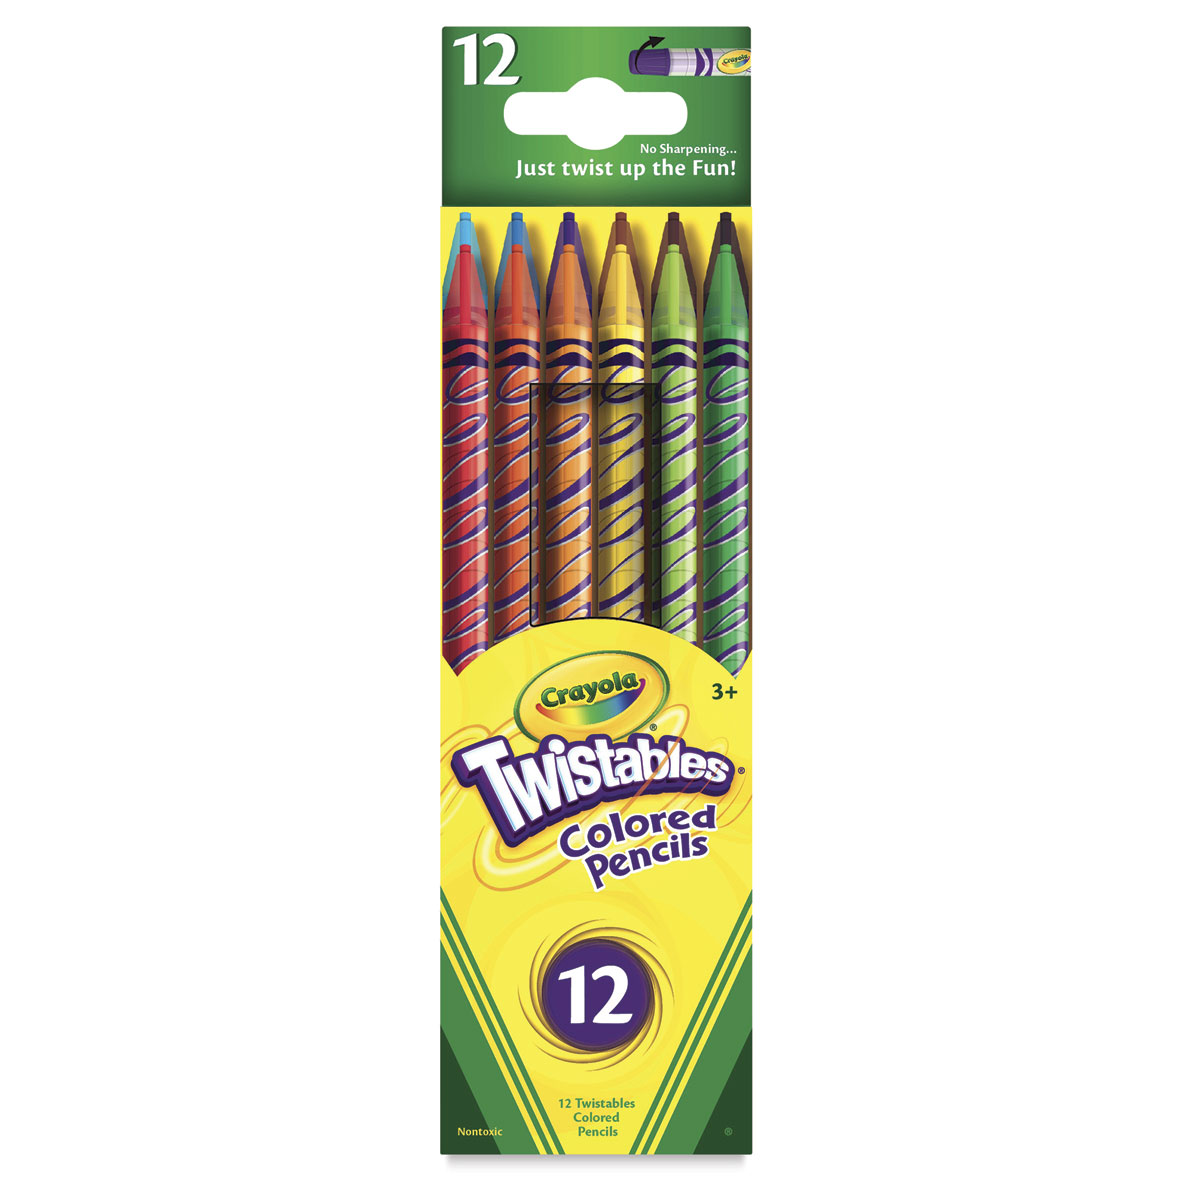 Crayola Twistables Colored Pencil Set - Vibrant Colors, Set of 18